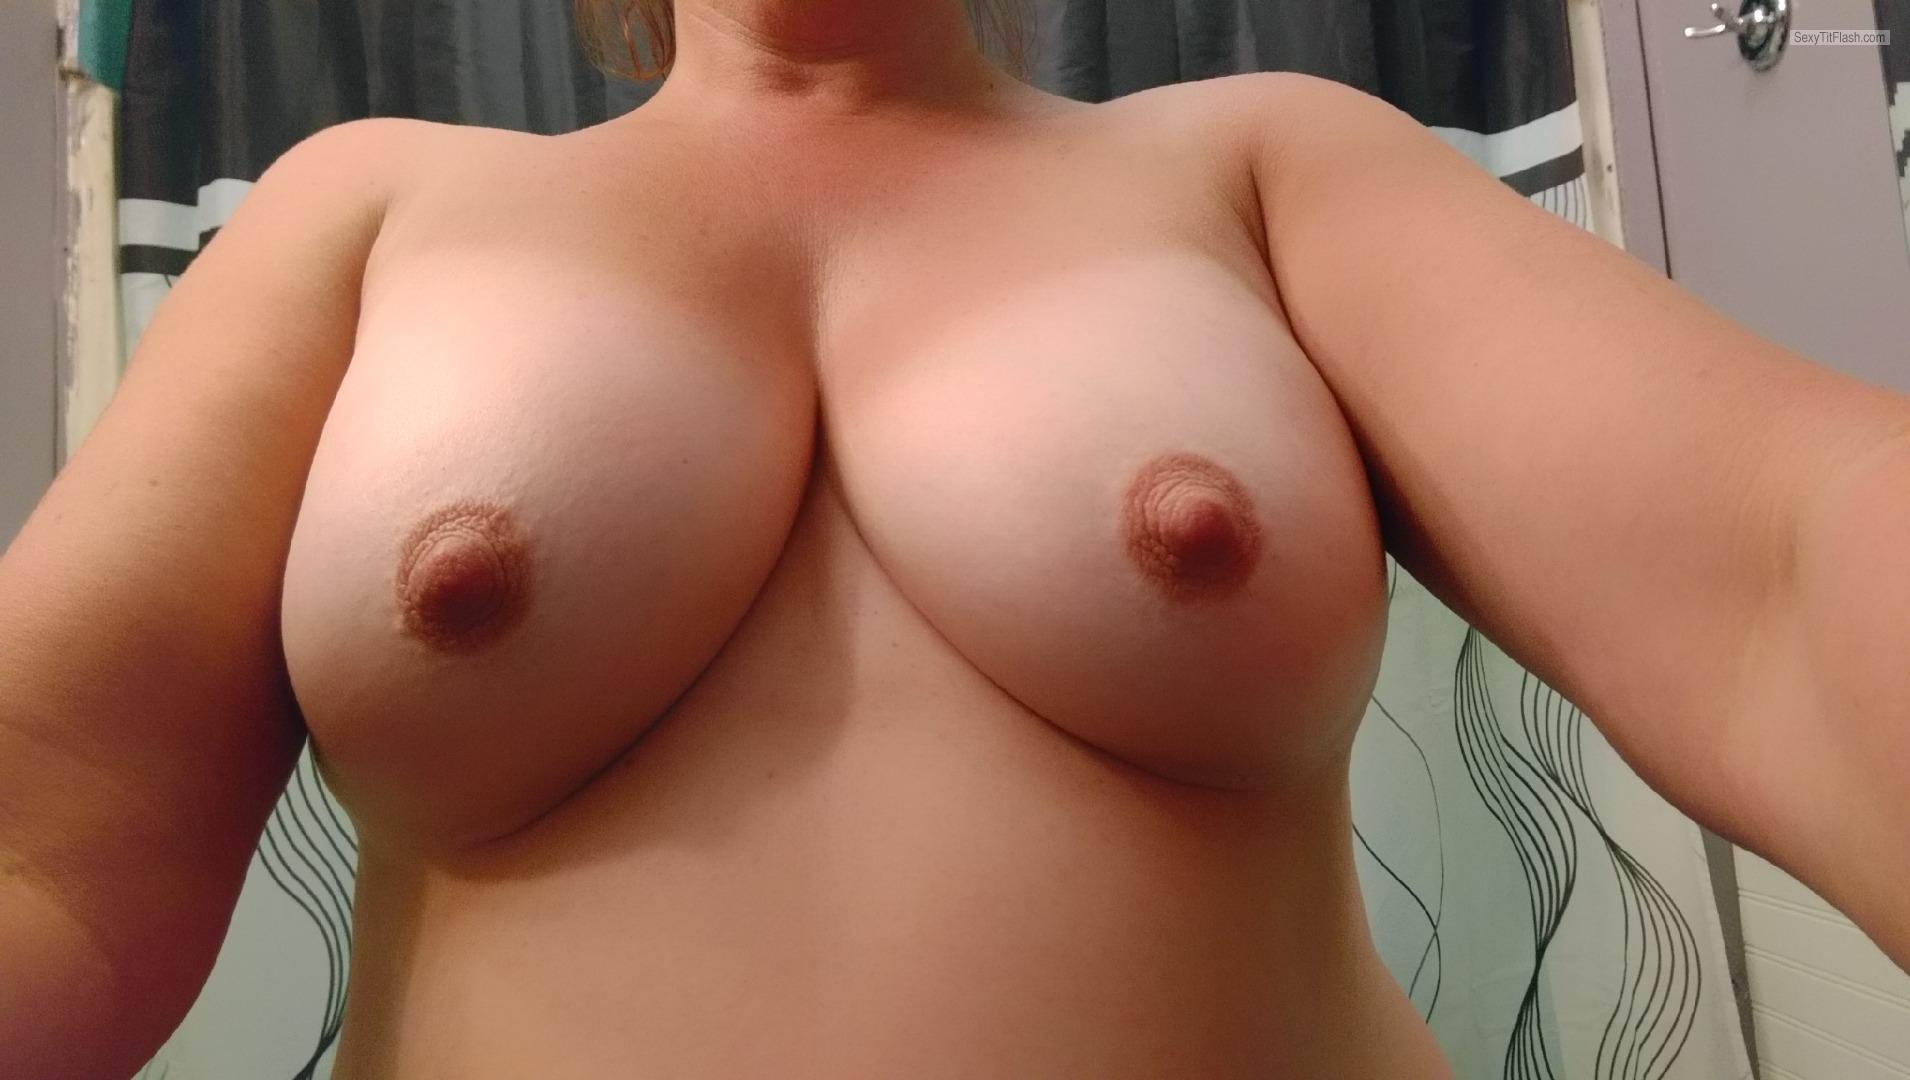 Tit Flash: My Big Tits (Selfie) - Milf Tits from United Kingdom